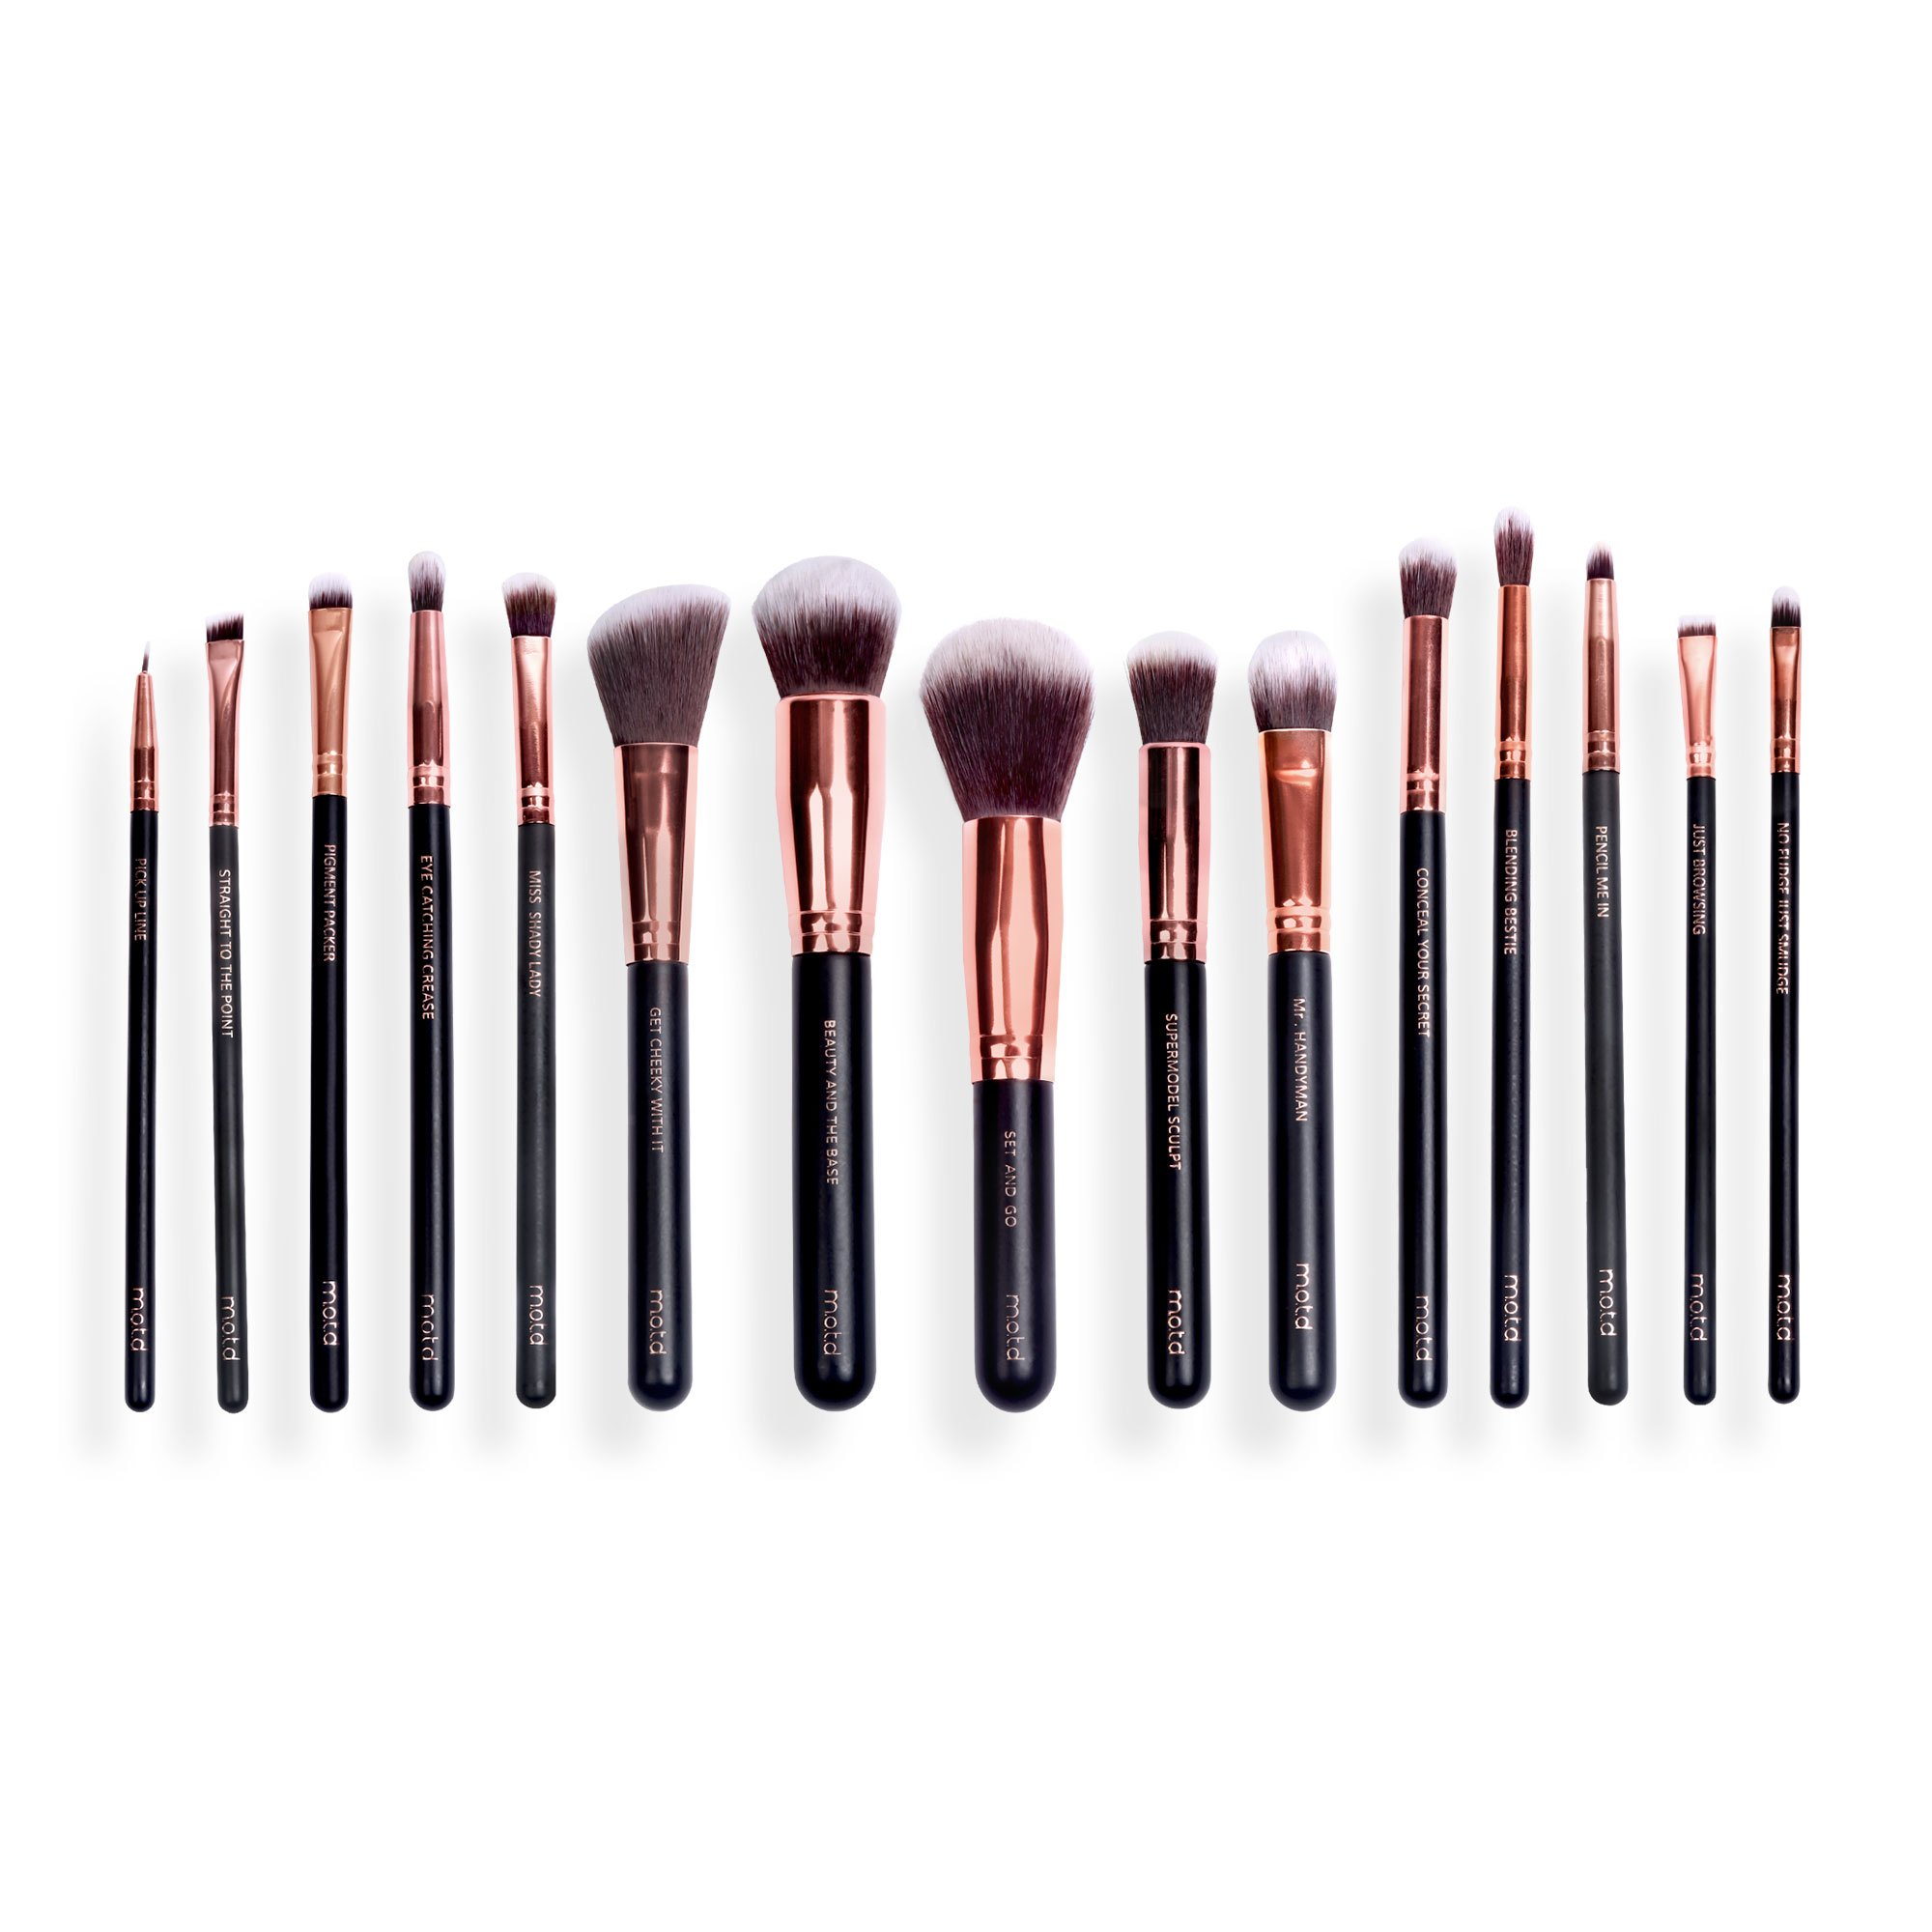 Luxe makeup brushes